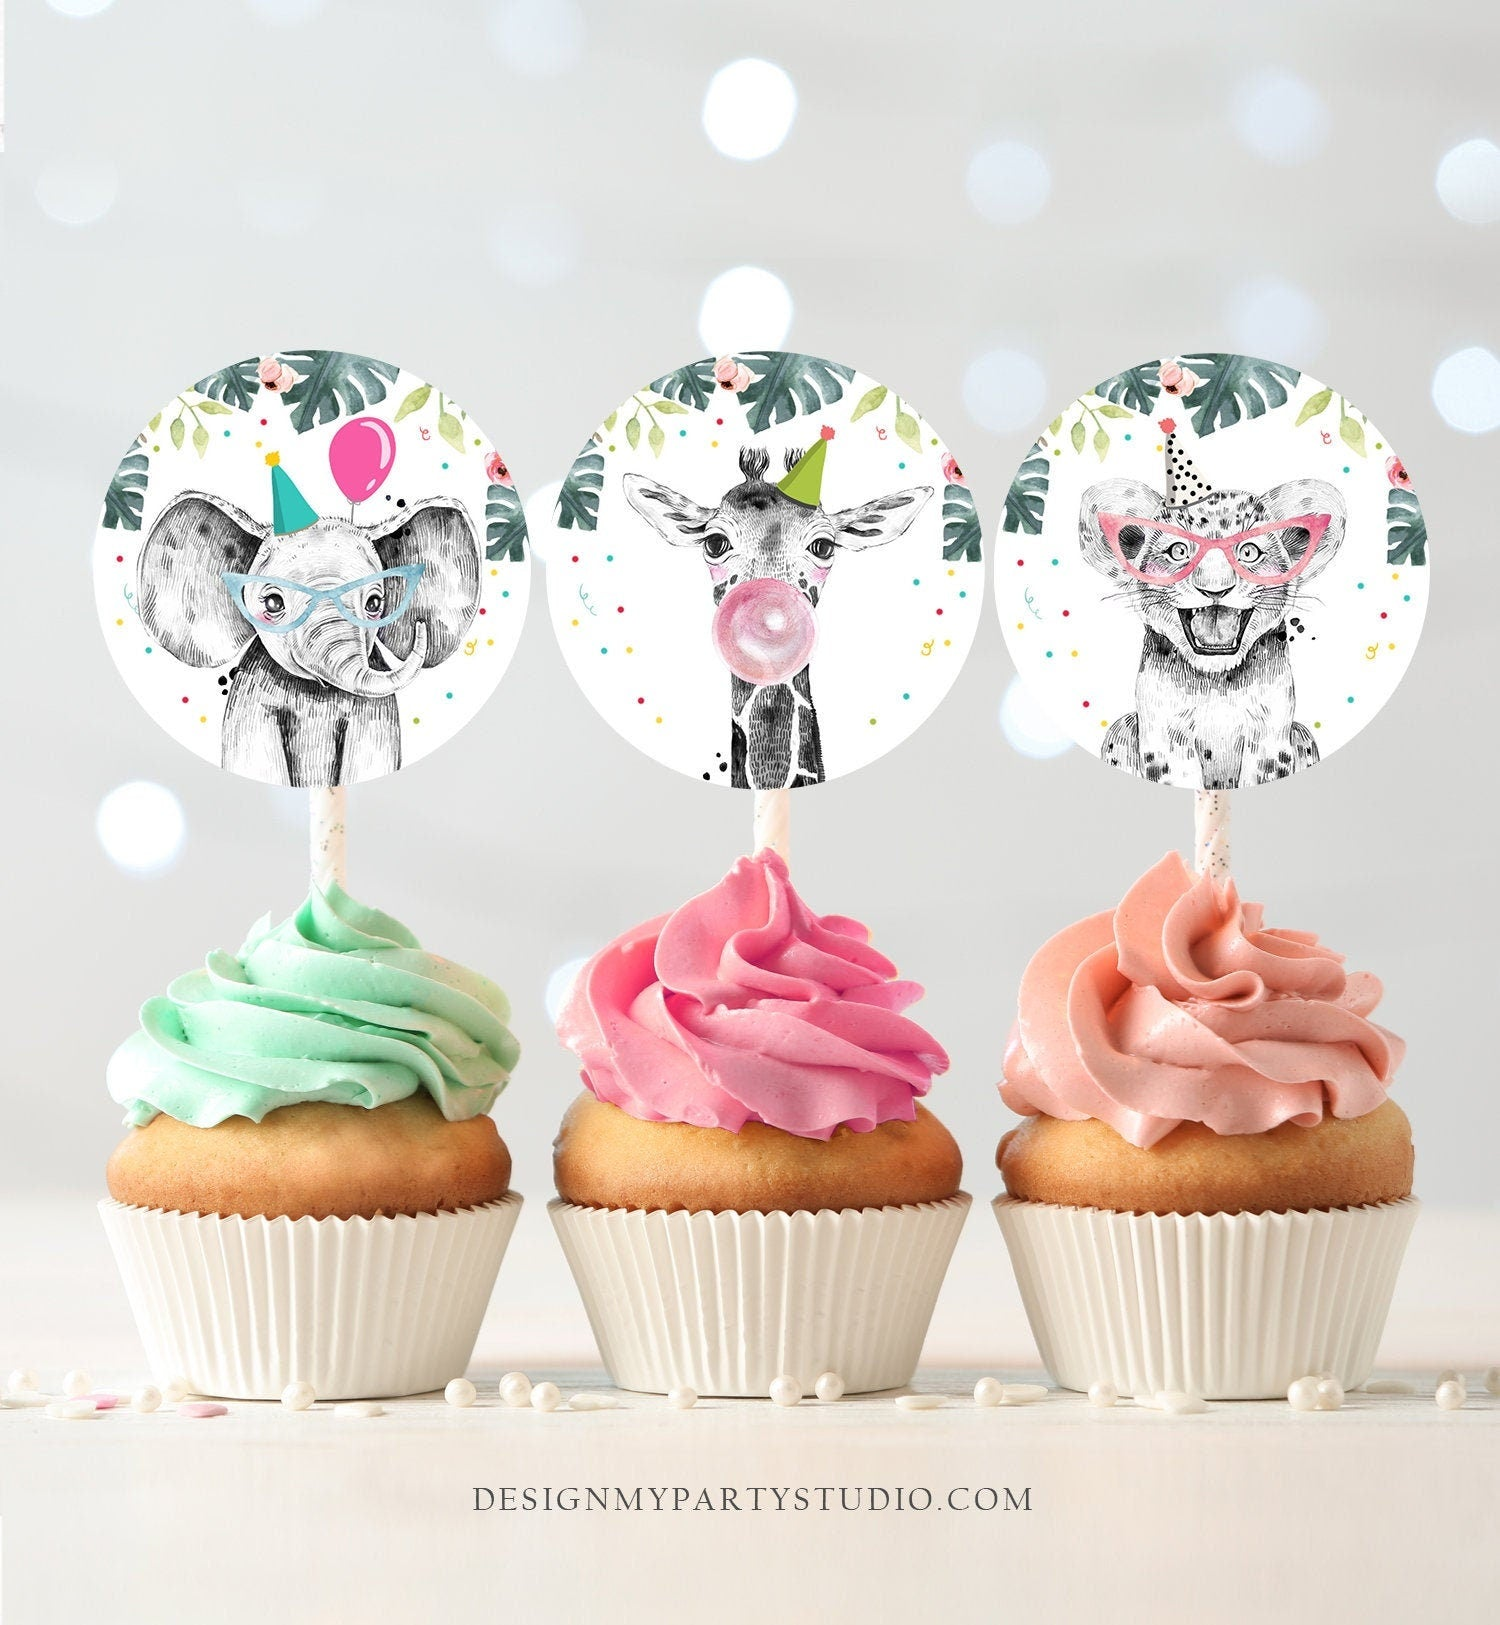 Party Animals Cupcake Toppers Favor Tags Birthday Party Decoration Safari Animals Zoo Birthday Wild One download Digital PRINTABLE 0322